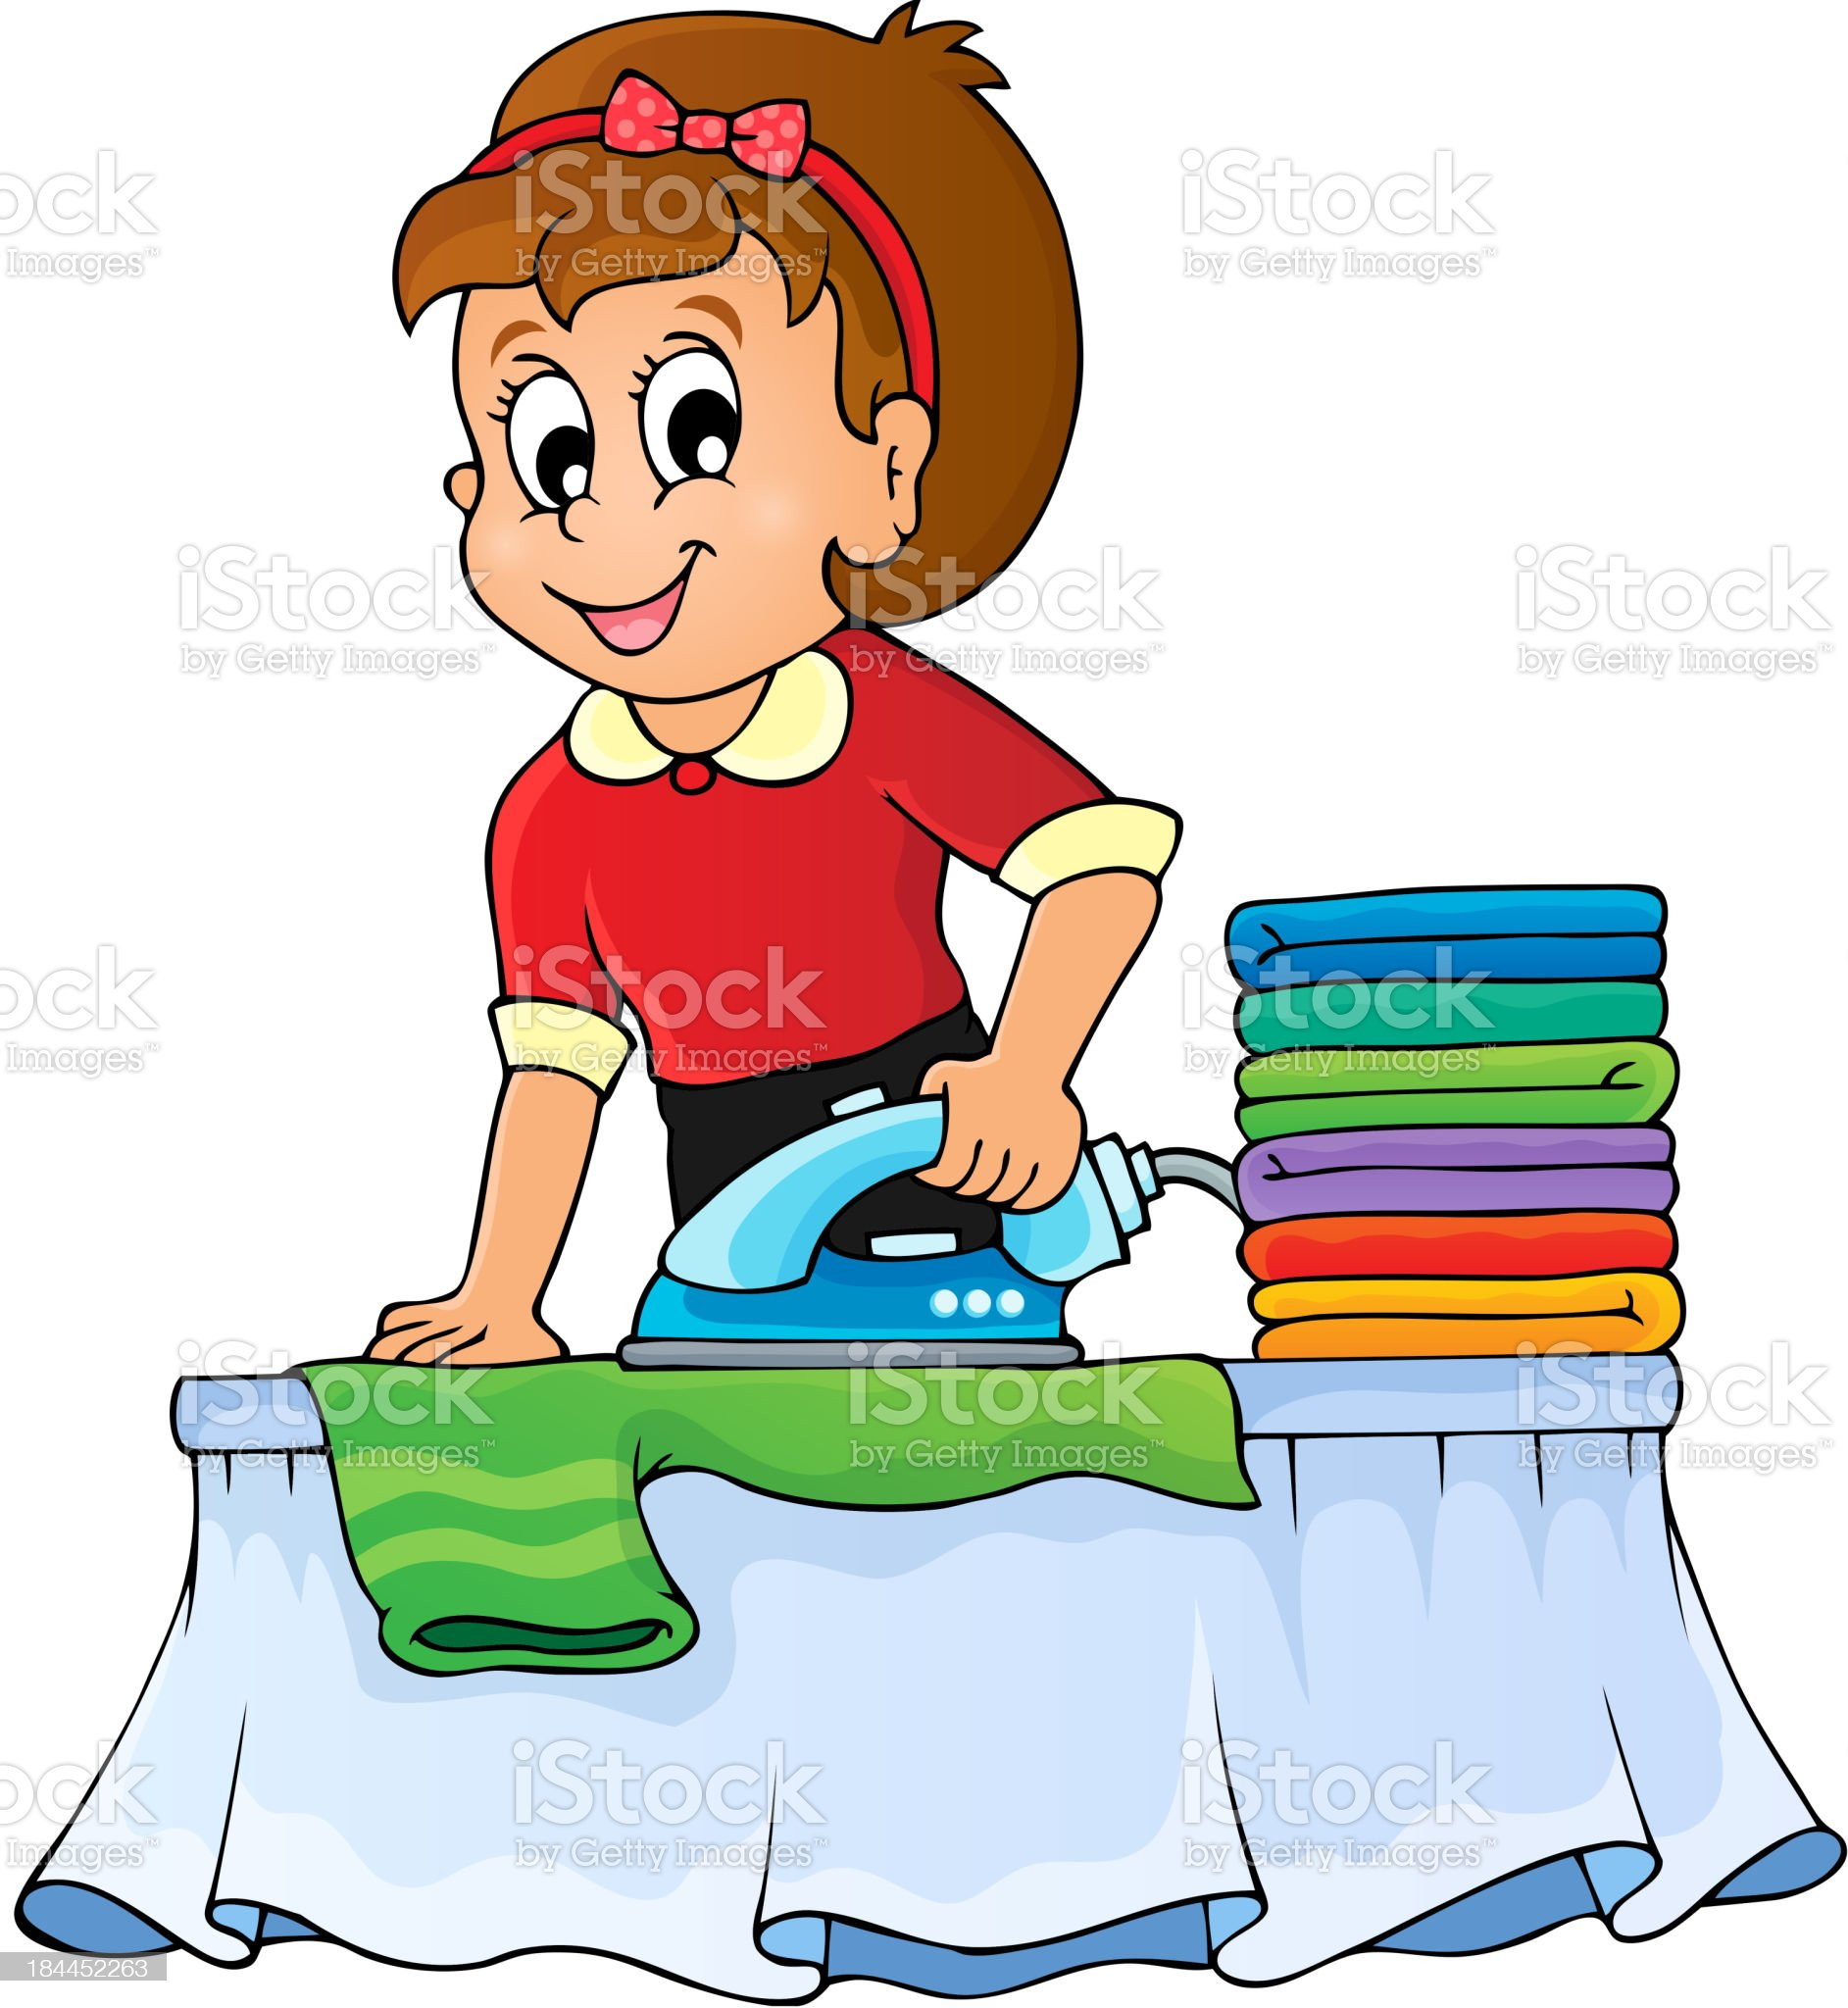 Housewife topic image 1 royalty-free stock vector art